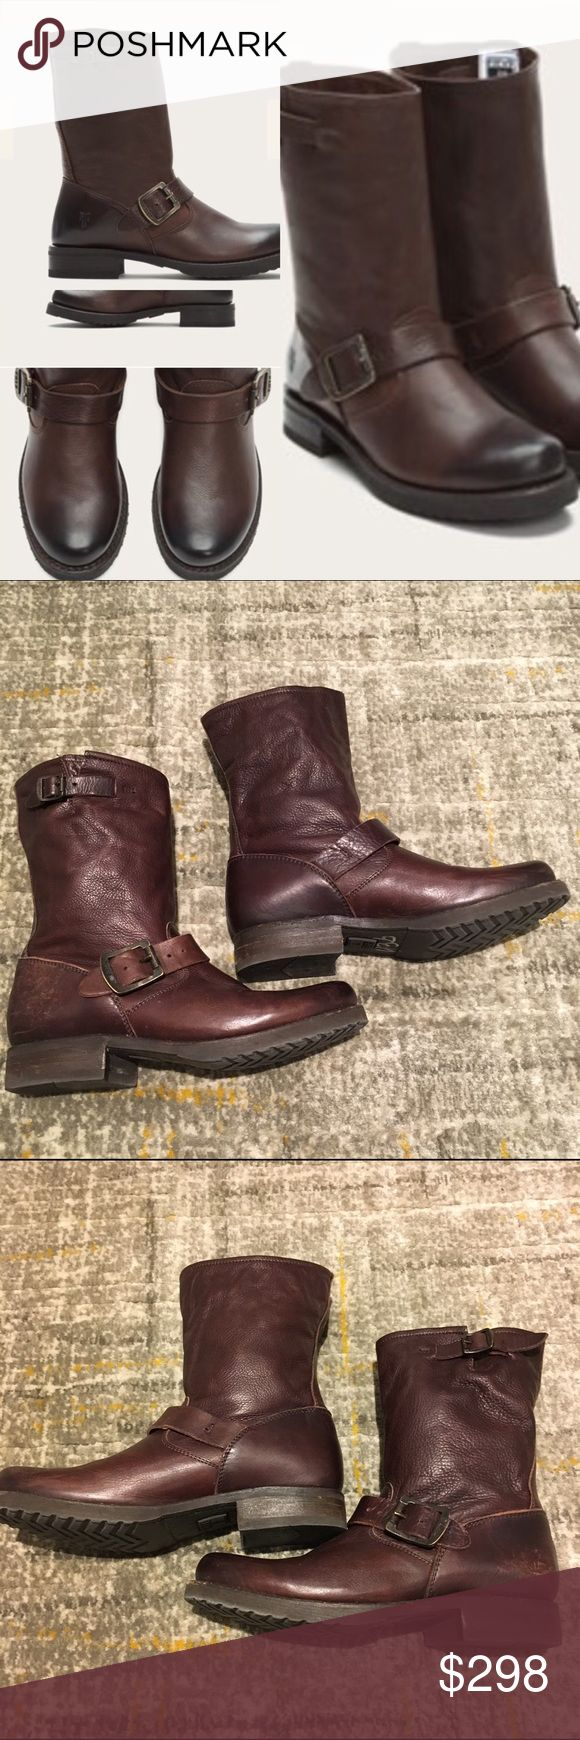 "Frye Veronica Dark Brown Short Boots Size 6.5 🎁Offers welcome 🔑Bundle to save                                             👍Like for price drop notifications               EUC Veronica Frye Boots. Classic soft & supple genuine Italian leather, washed & antiqued, mid-calf height, unlined, leather outsole w rubber forepart, 9"" shaft height, 13"" shaft circumference, 1"" heel height, stacked leather heel. Some minor scuffs but excellent condition-see photos. Last photo: detached section is part…"